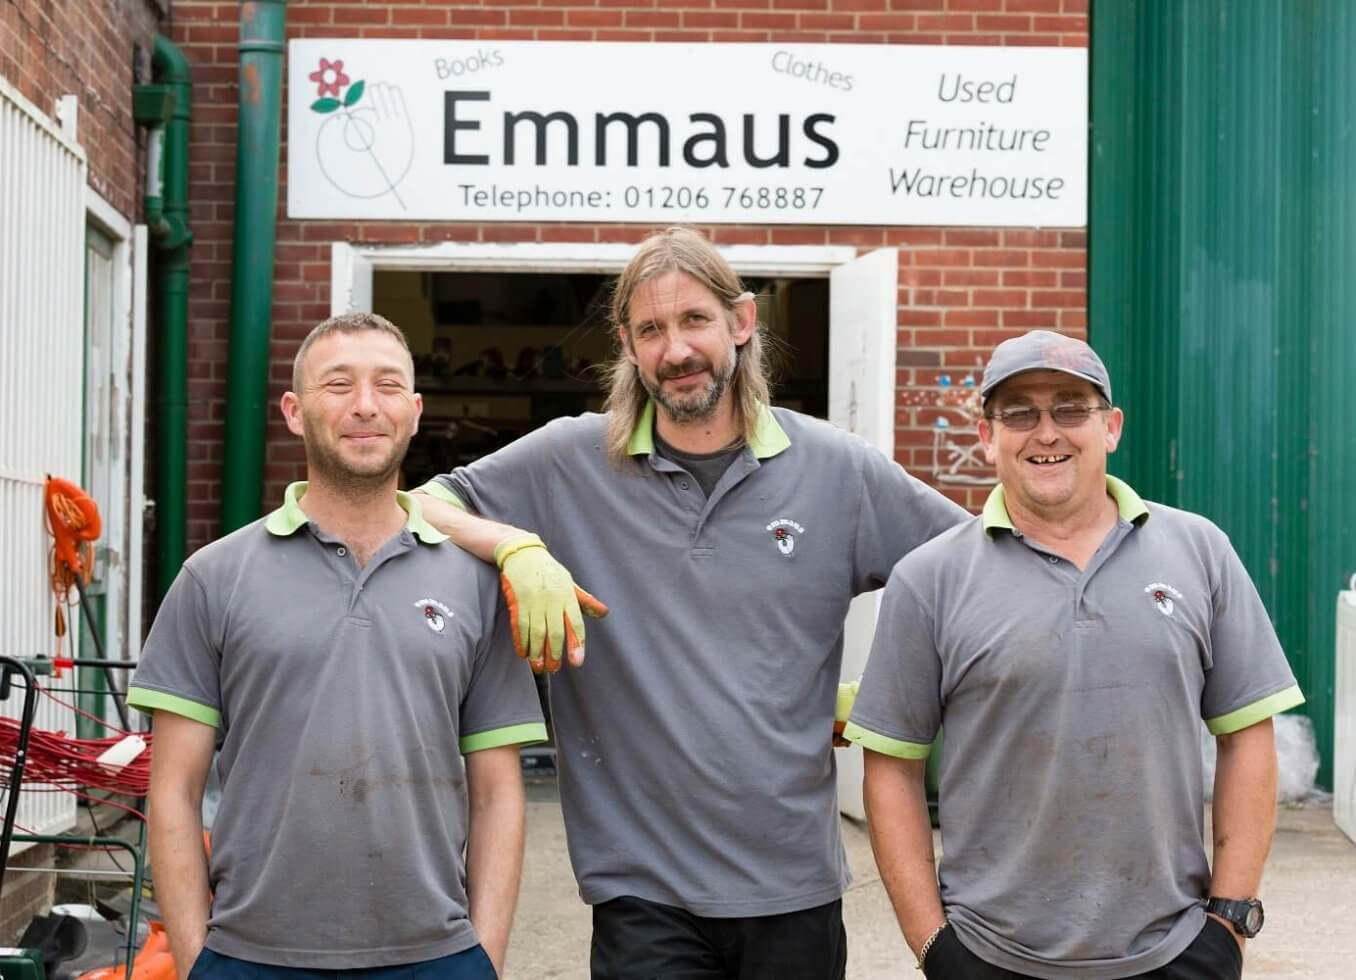 Emmaus in the UK